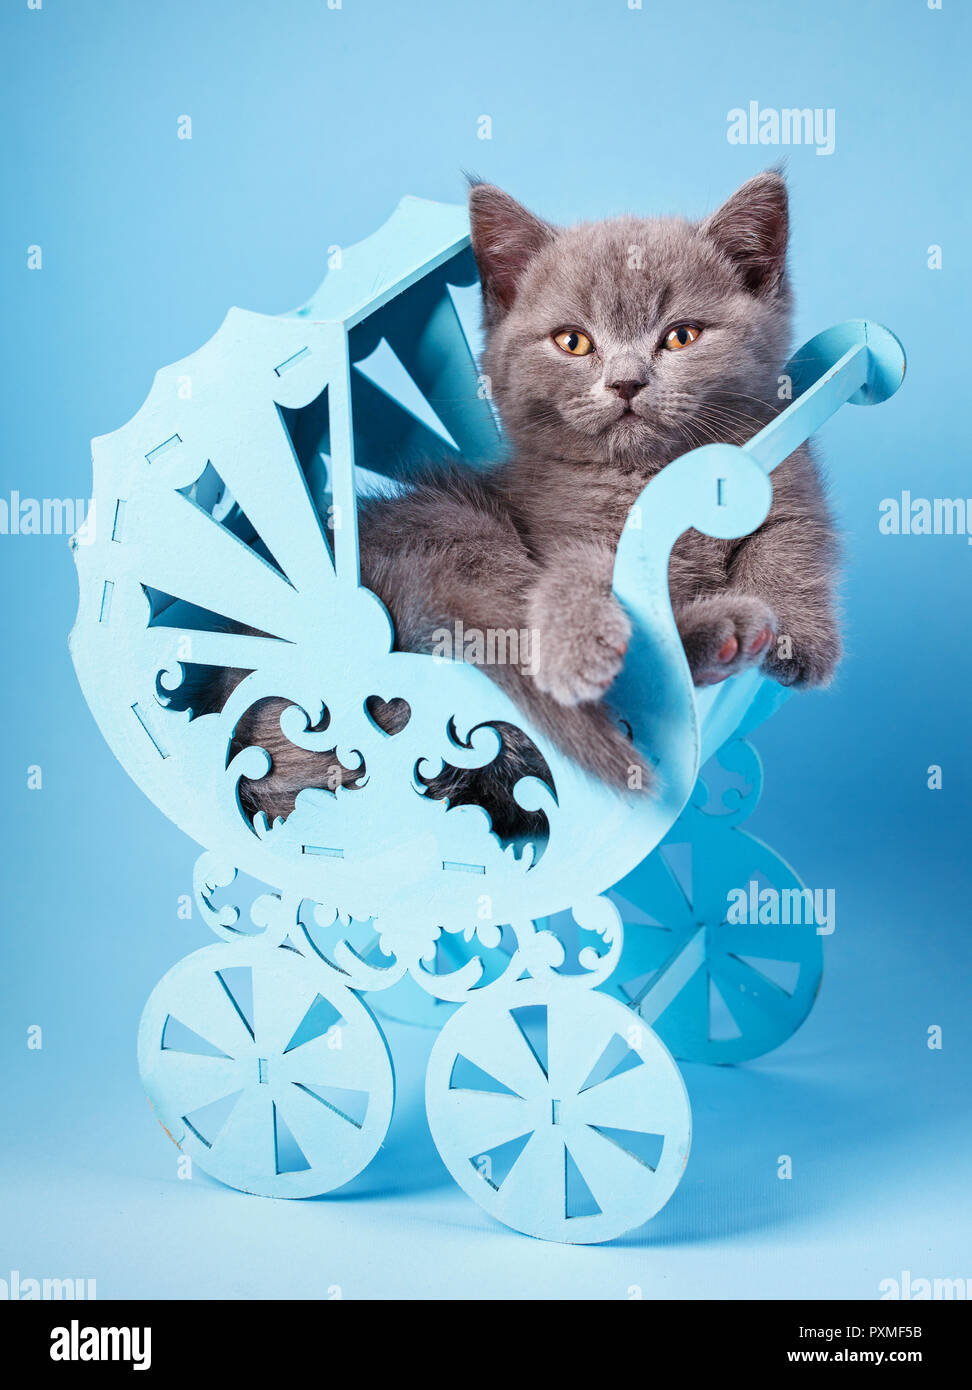 Scottish straight kitten. Kitty in a decorative cradle. The cat looks at the camera. A playful, fluffy kitten explores new territories. On a blue back - Stock Image